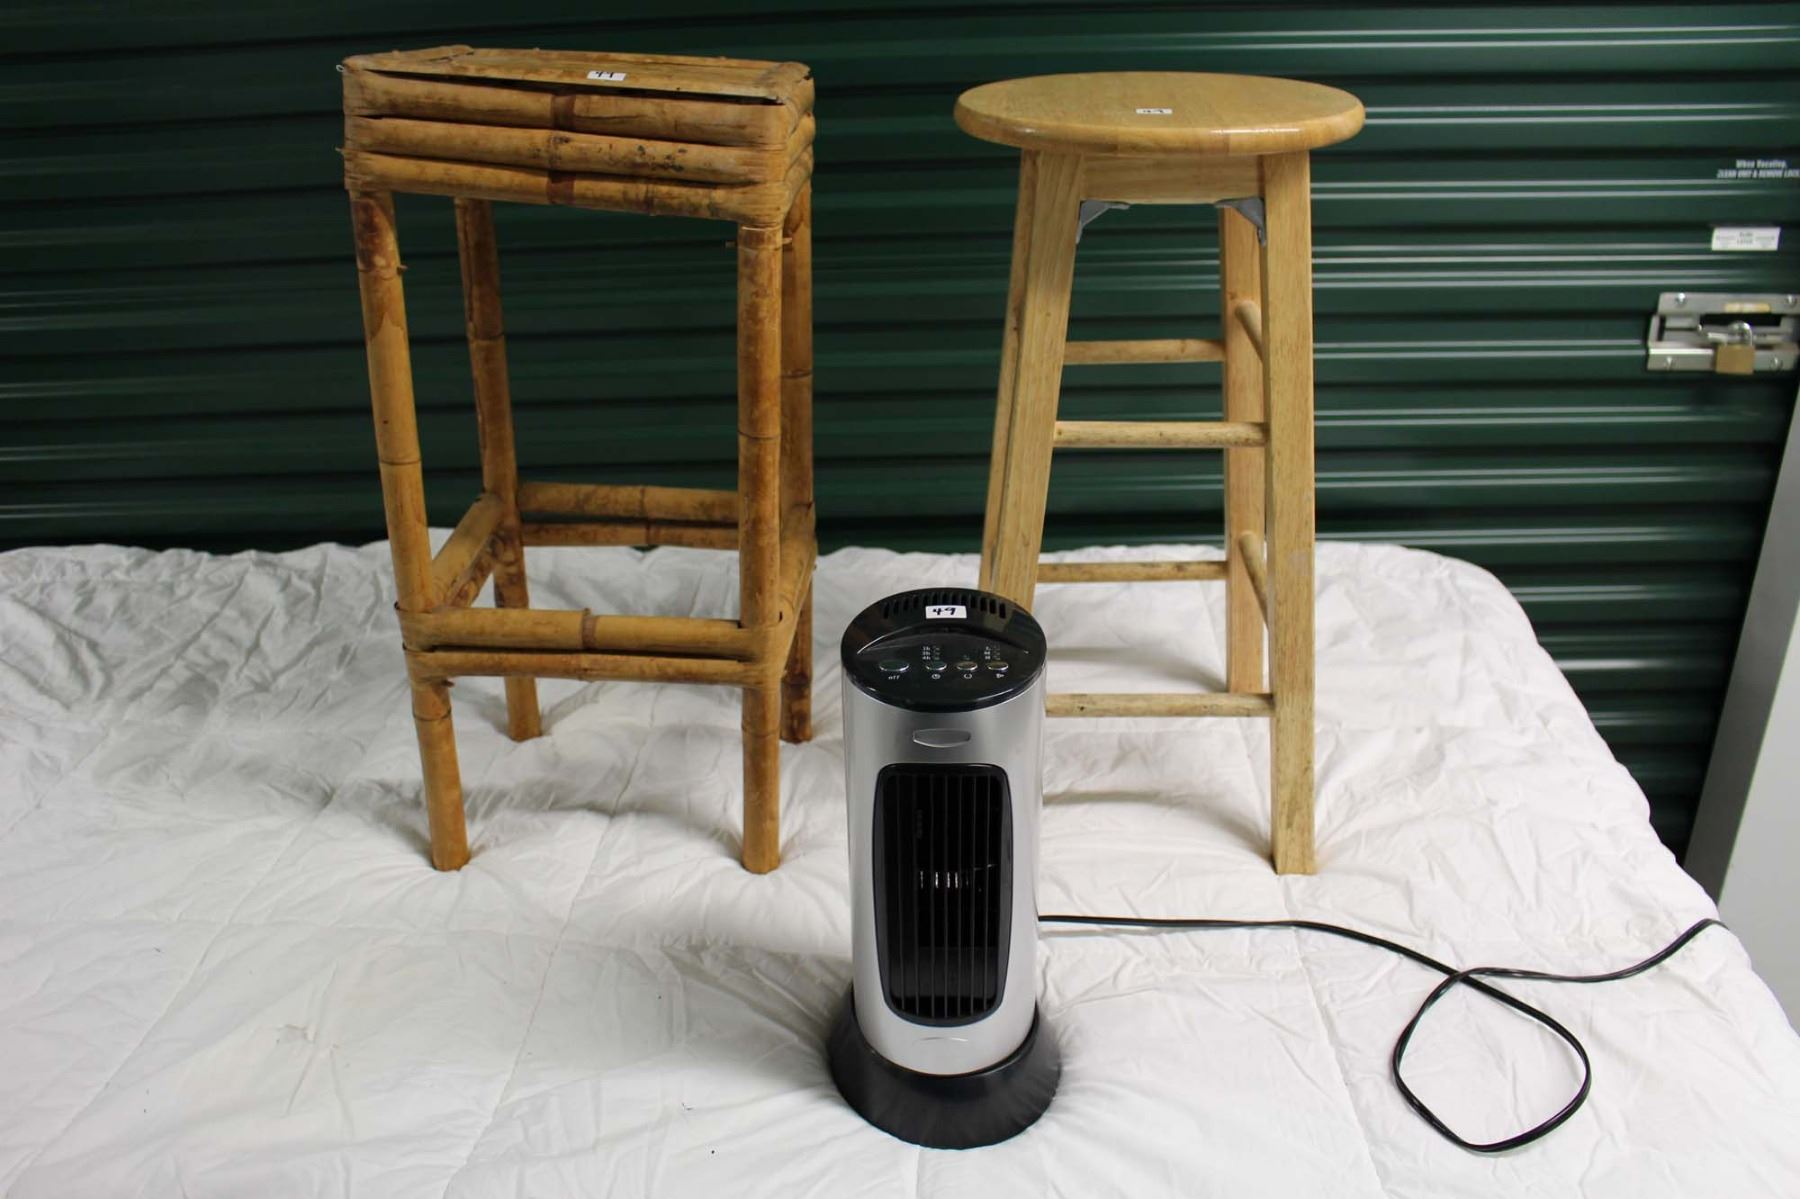 Terrific Wooden Stool Plant Stand Small Fan Working Squirreltailoven Fun Painted Chair Ideas Images Squirreltailovenorg